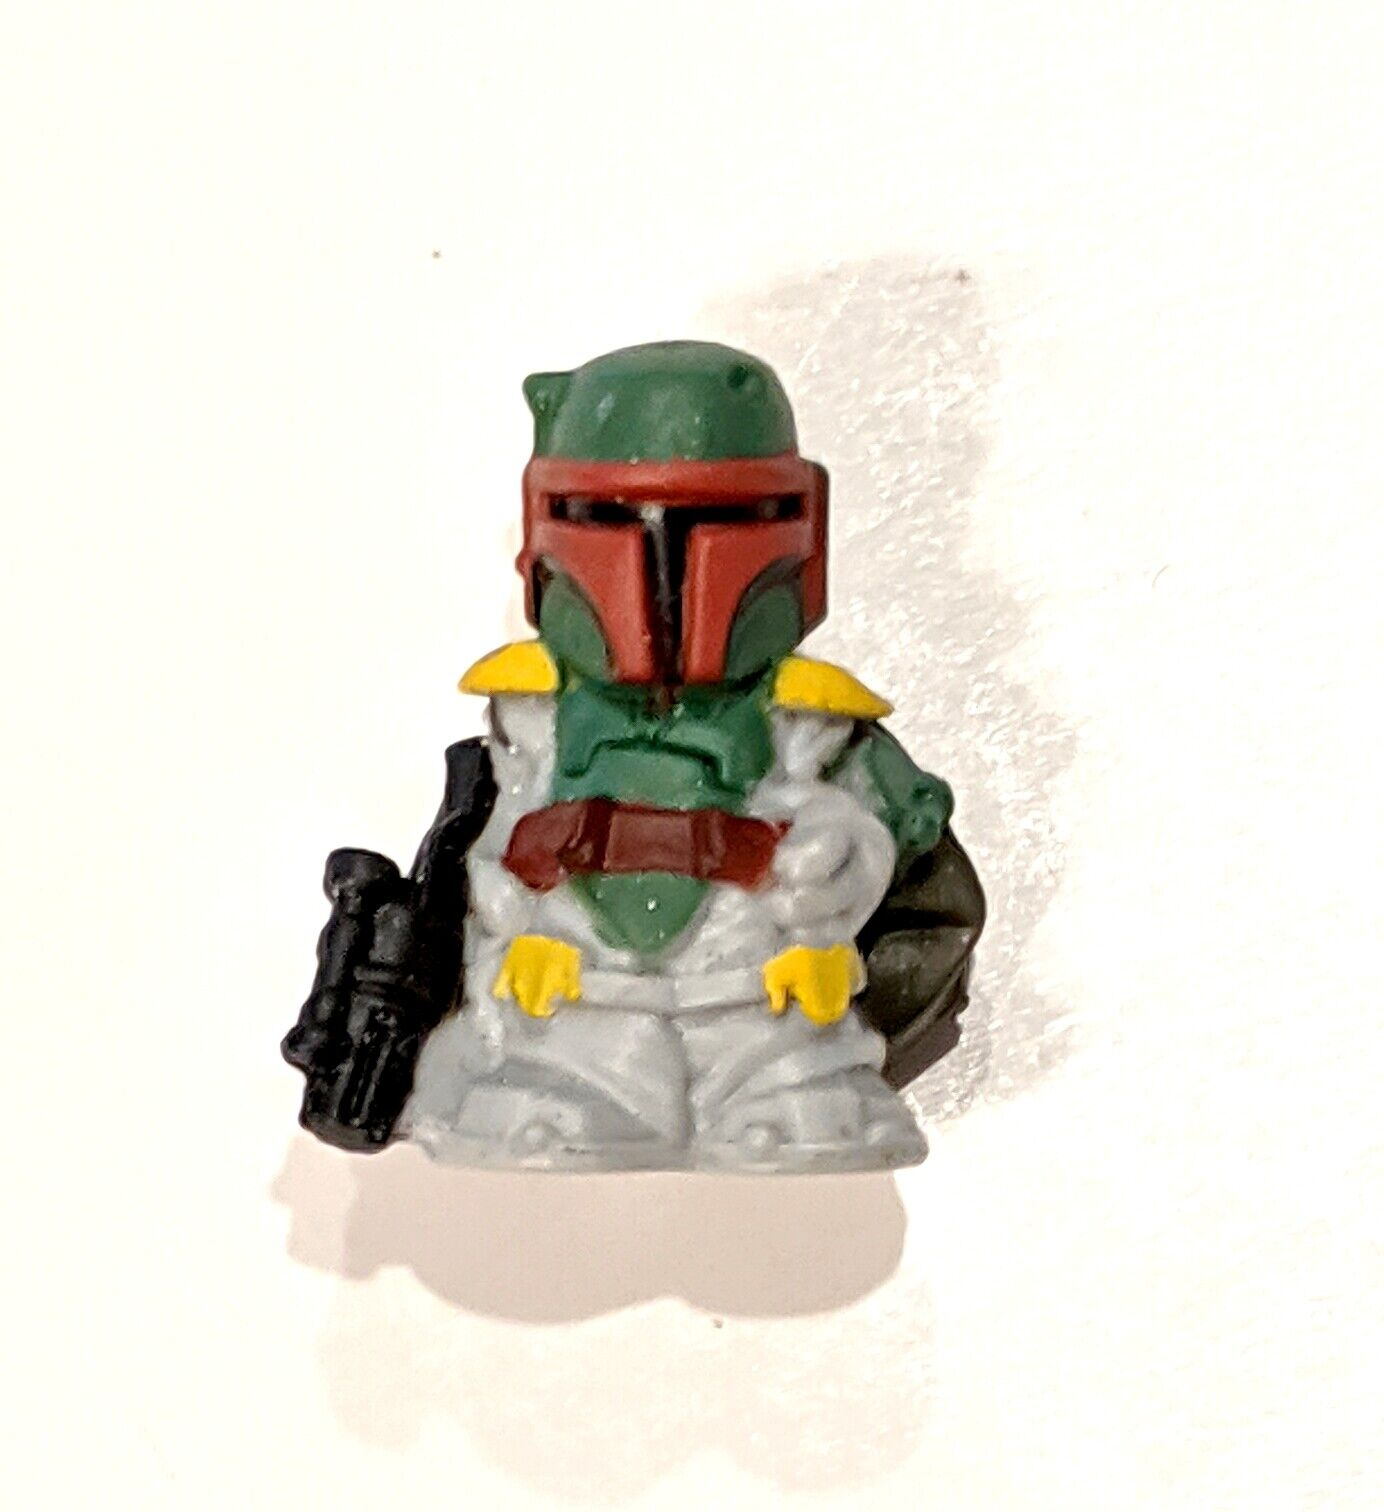 Star Wars Fighter Pods Series 1 #24 CLONE TROOPER Micro Heroes Comme neuf de Paquet